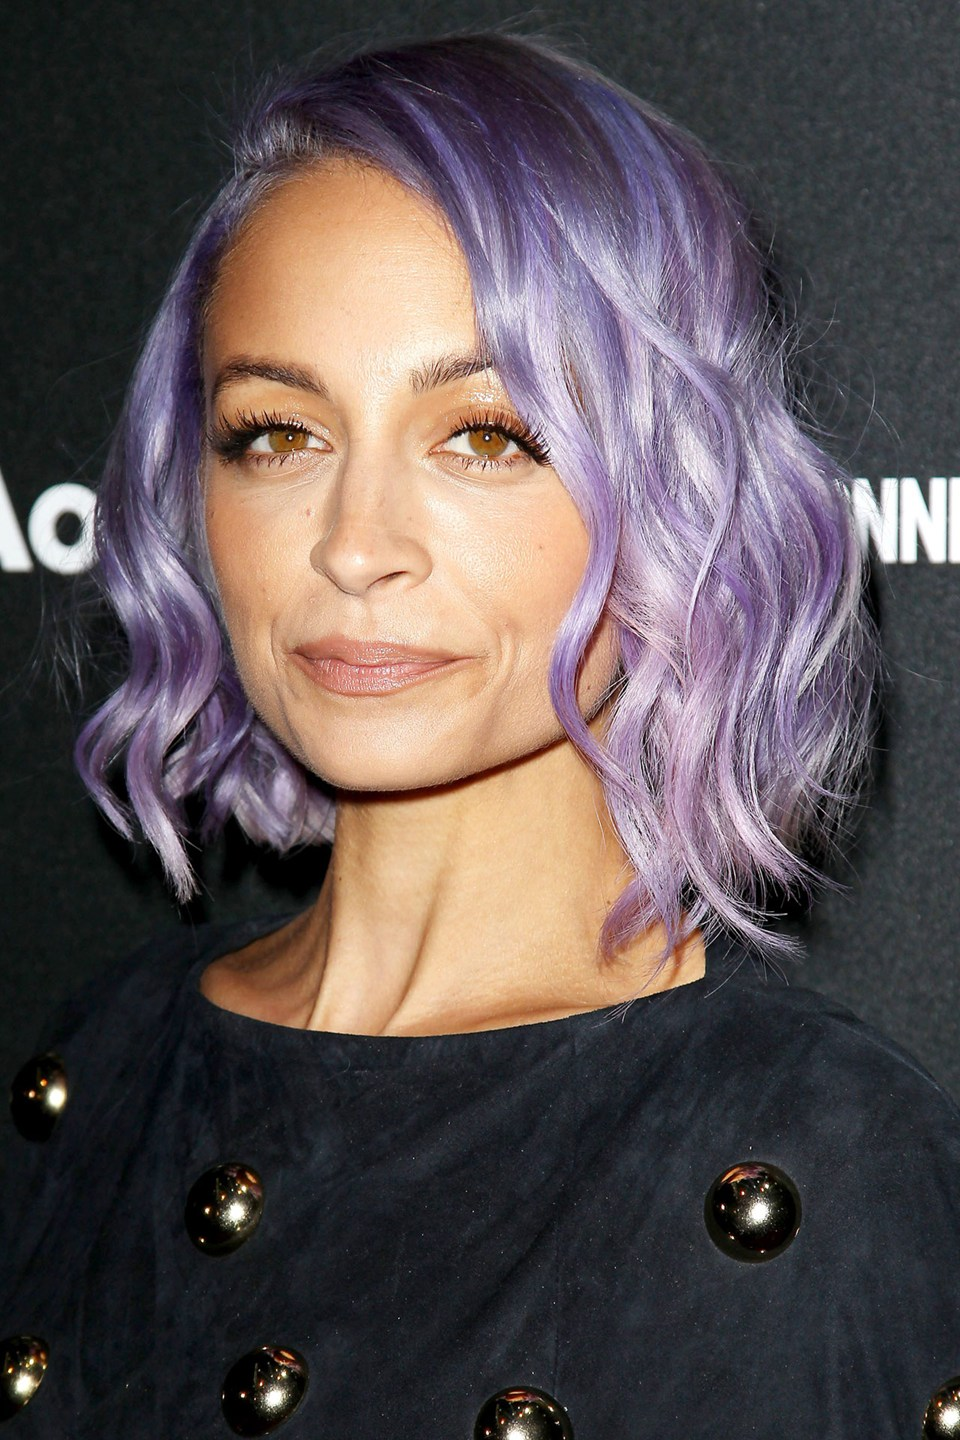 Nicole Richie's violet locks are our hair inspo DREAM! She is on point with a simple waved, long bob or a beautiful voluminous up-do.